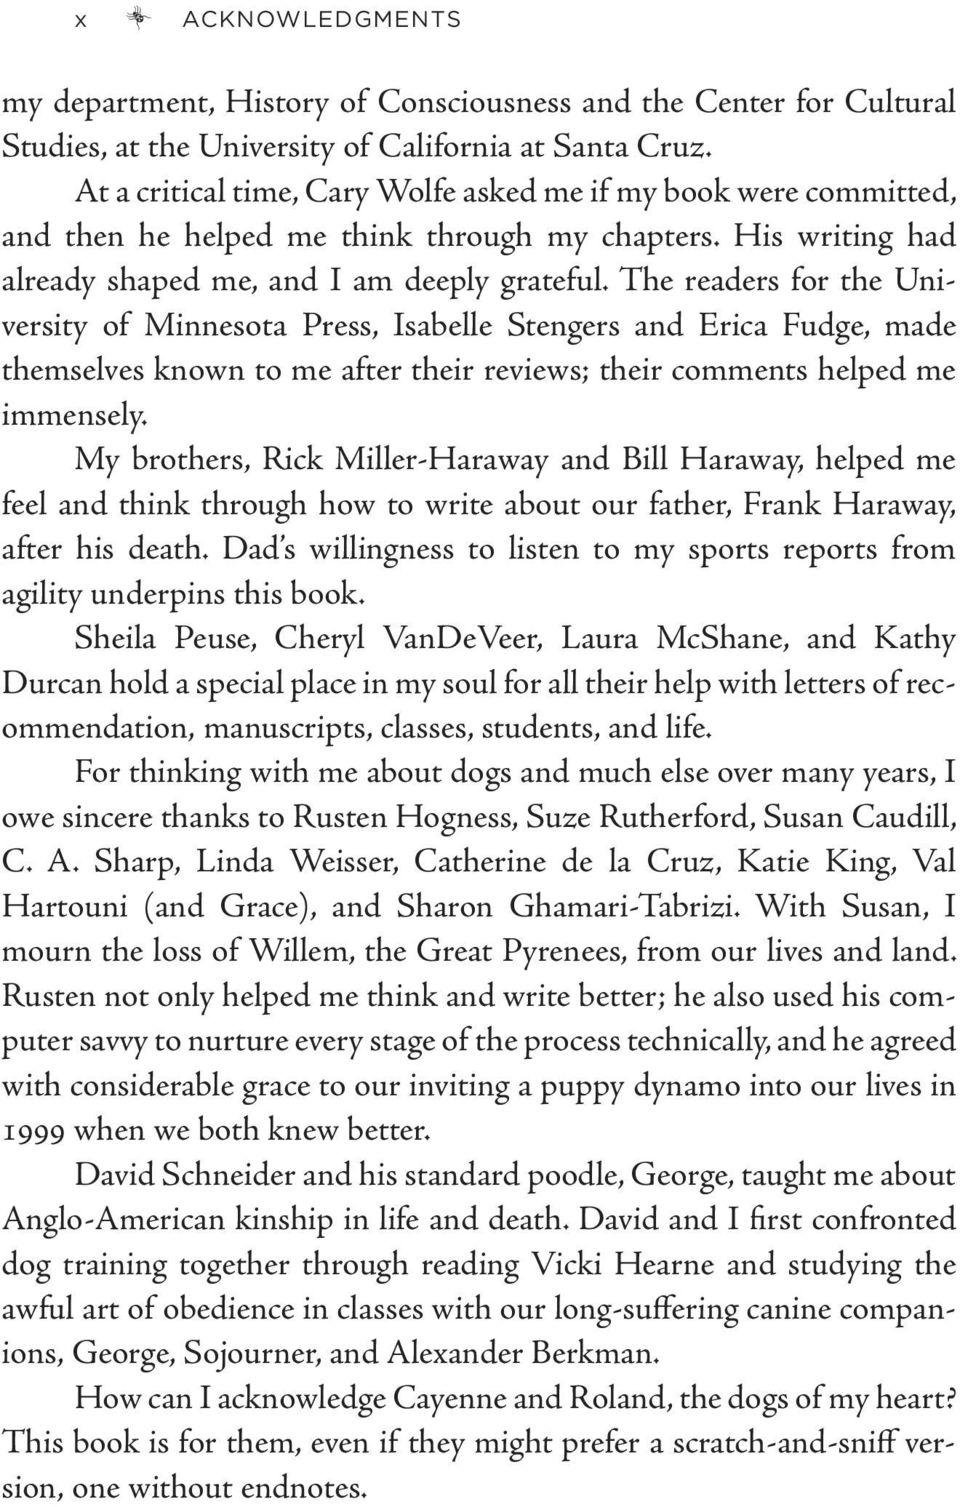 The readers for the University of Minnesota Press, Isabelle Stengers and Erica Fudge, made themselves known to me after their reviews; their comments helped me immensely.